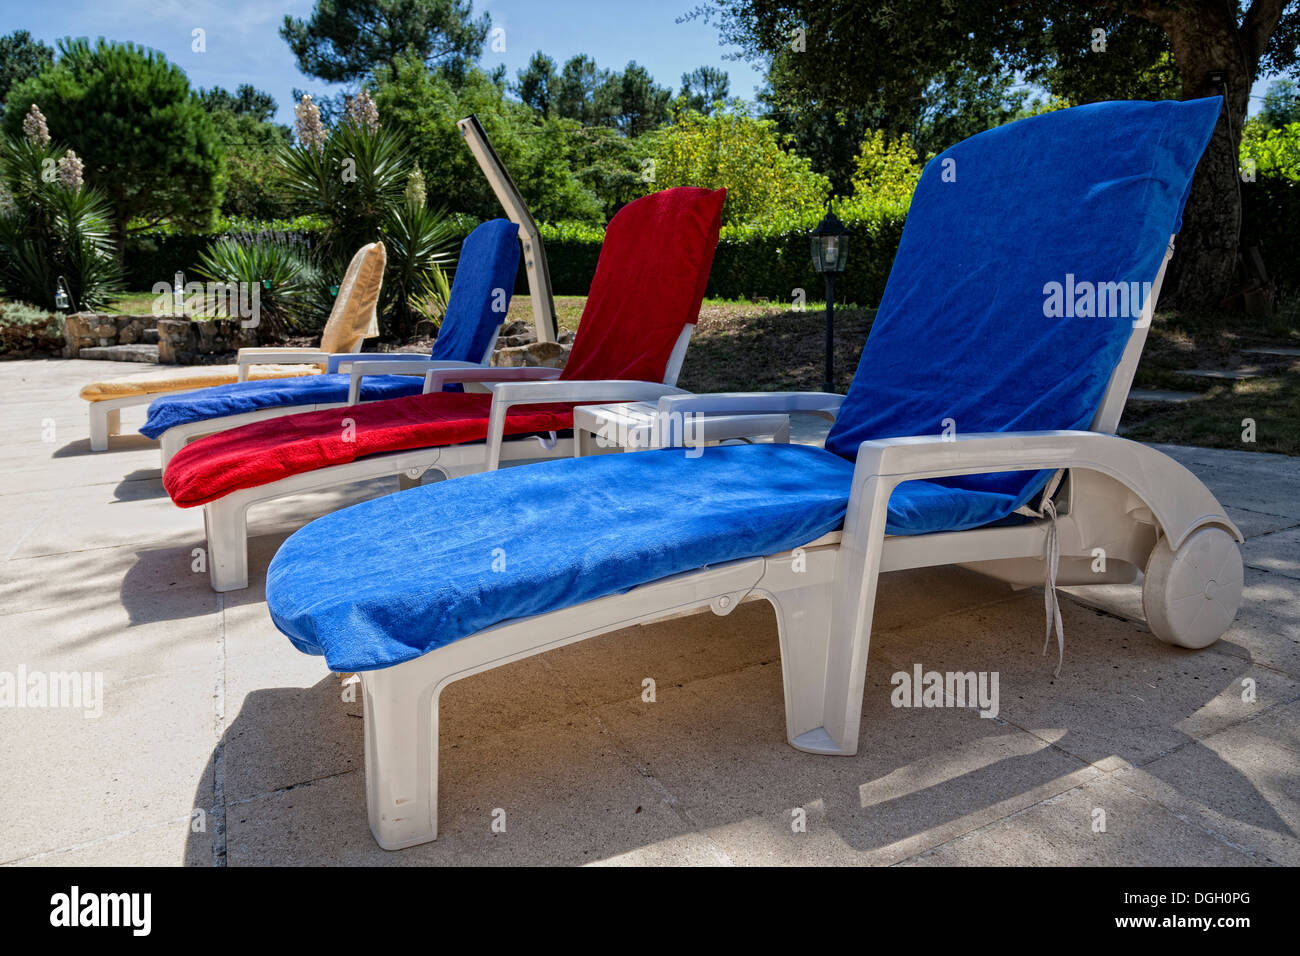 Plastic recliner chairs covered with bright blue or red fabric on a patio in the sun. & Plastic recliner chairs covered with bright blue or red fabric on a ...